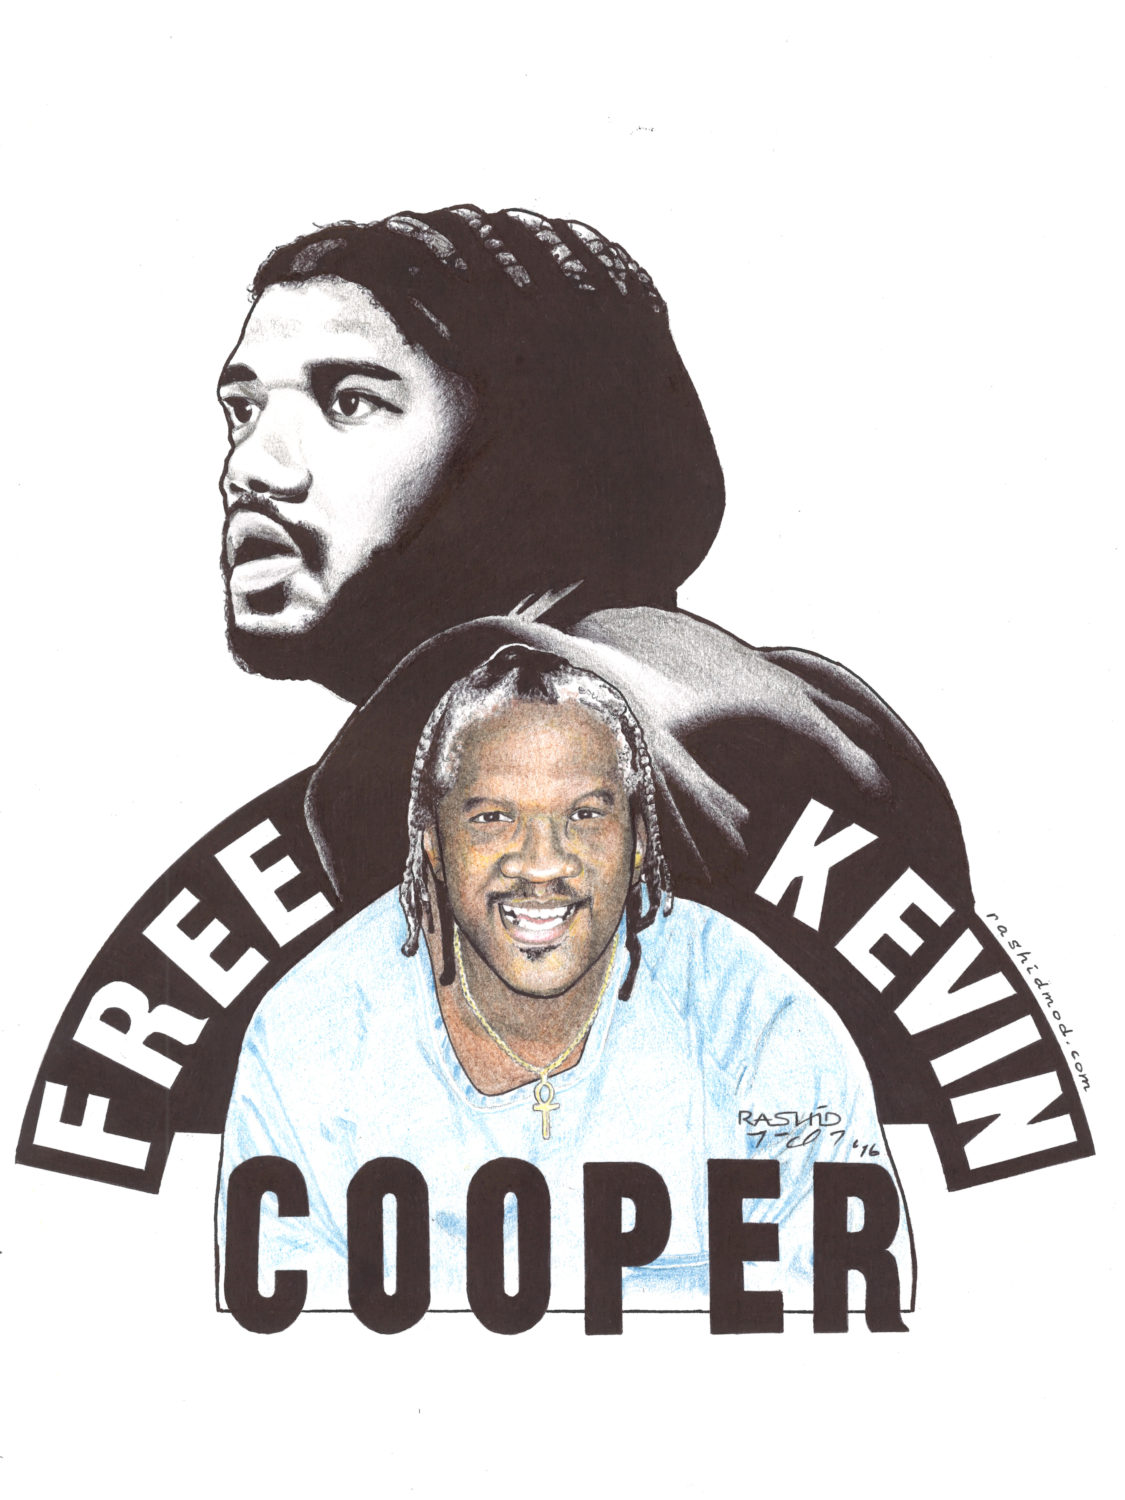 Free-Kevin-Cooper-art-by-Rashid-2016, A light at the end of the tunnel for Kevin Cooper, Behind Enemy Lines